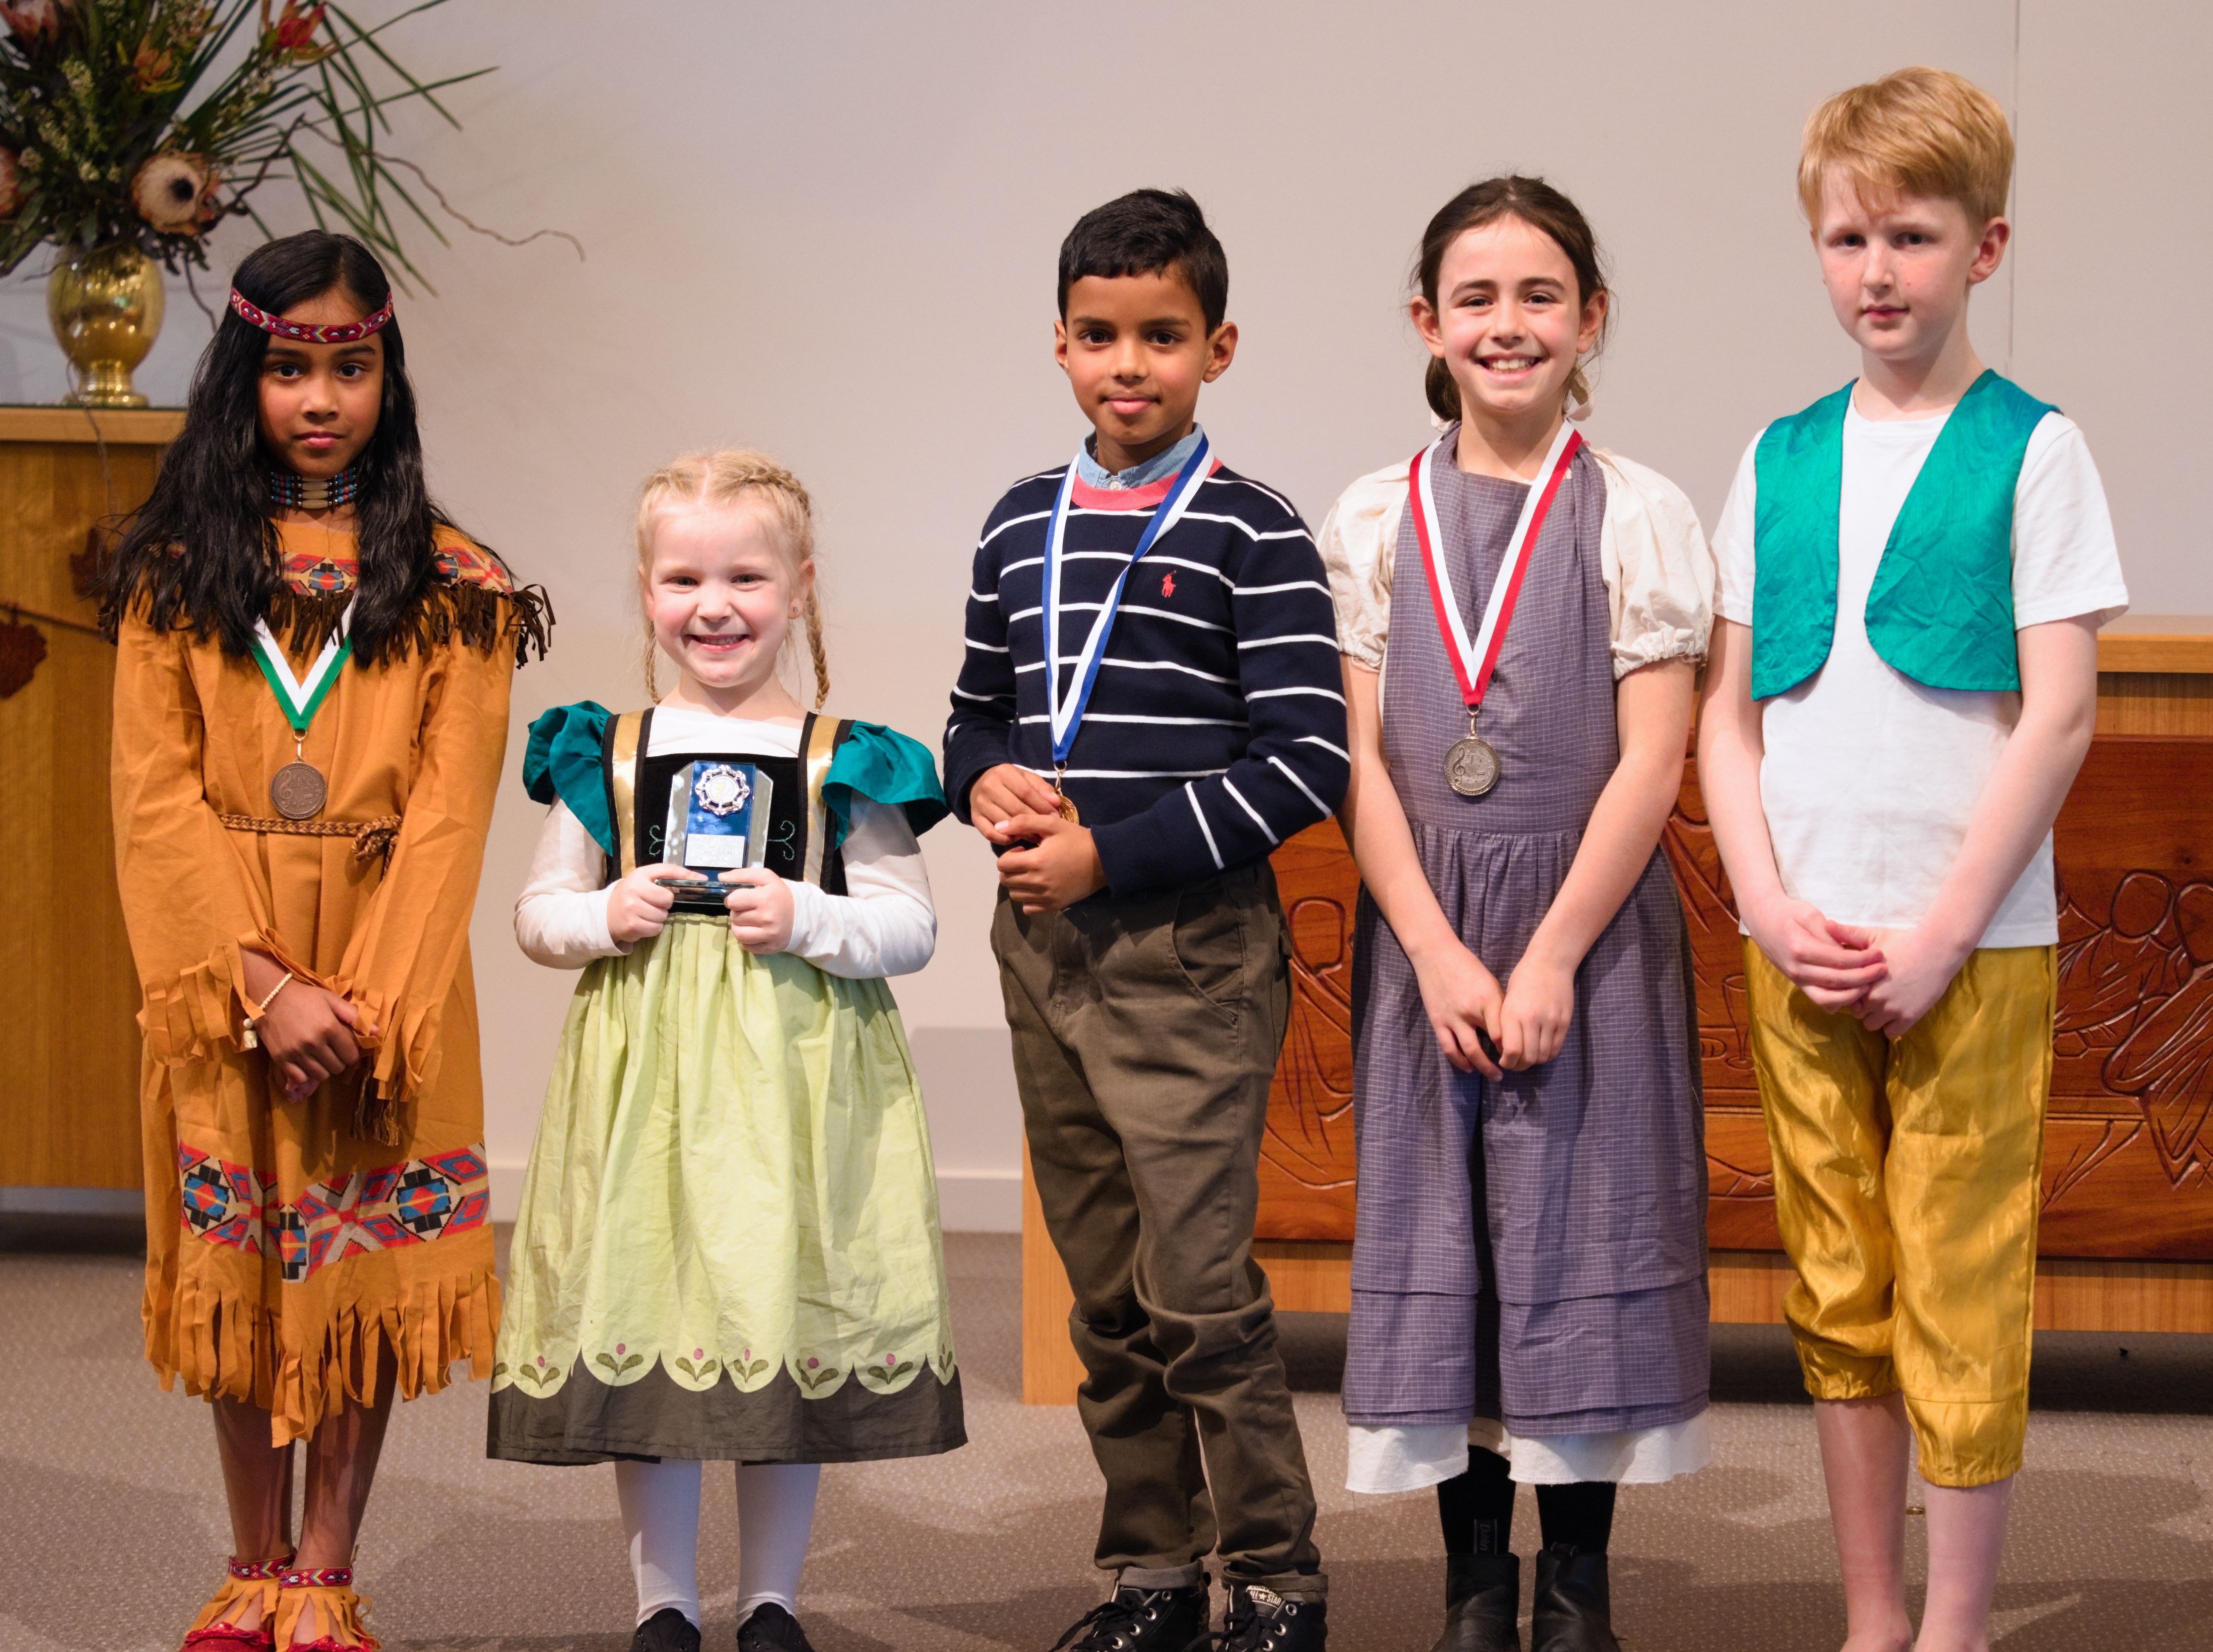 WGE Classical Vocal S702 1st Aiden Shayane Thanapathy, 2nd Grace Doherty, 3rd Dhanisha Kumar, HM Curtis Span and Encouragment Award Winner Nathalie Wilksch